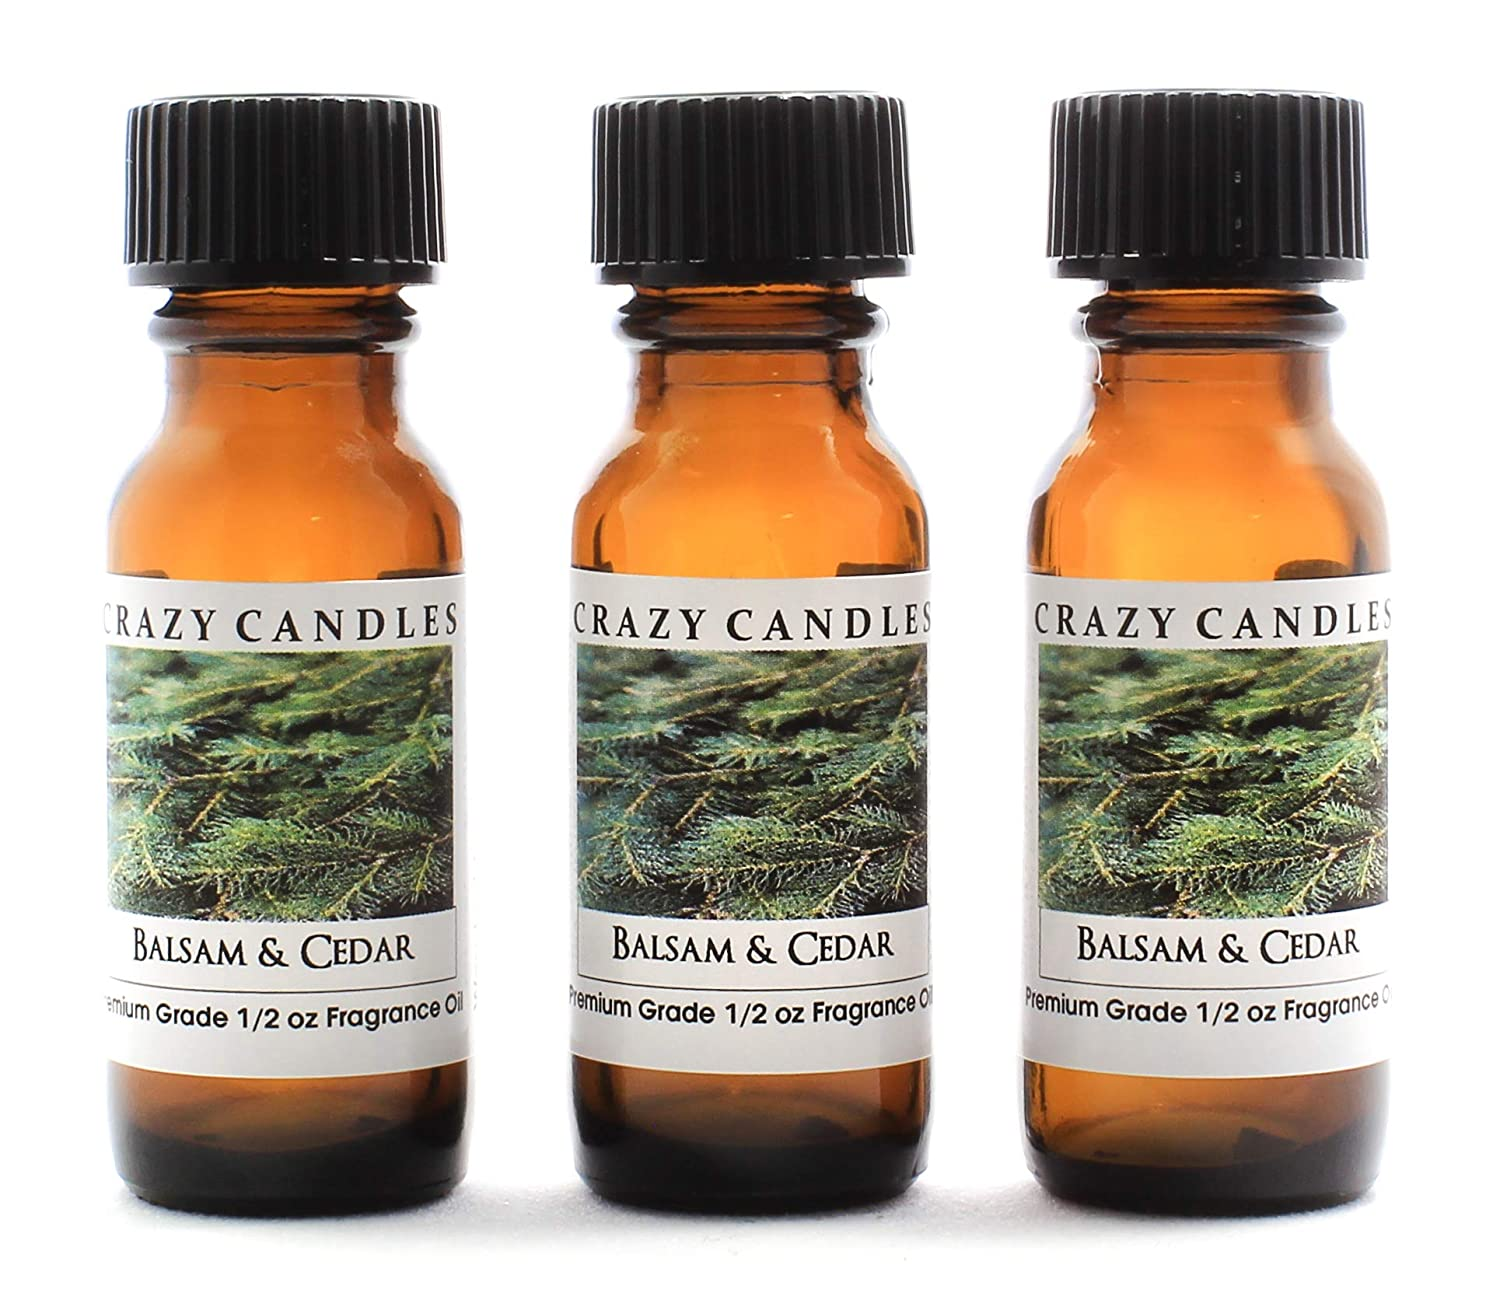 Crazy Candles Balsam & Cedar (Made in USA) 3 Bottles 1/2 Fl Oz Each (15ml) Premium Grade Scented Fragrance Oil